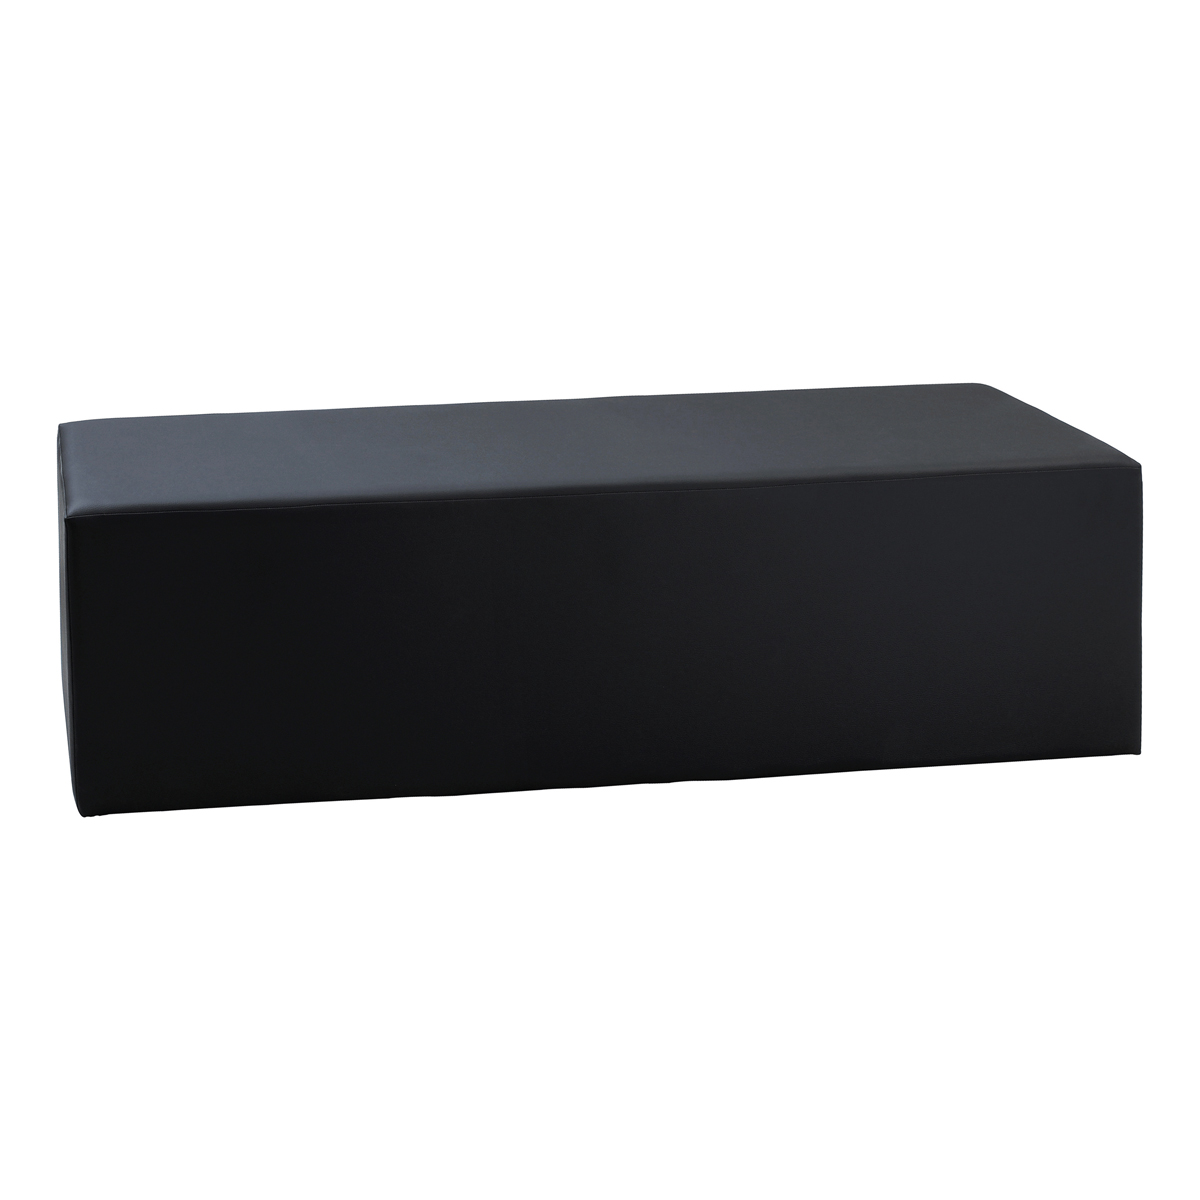 Hocker Cubi Big, schwarz